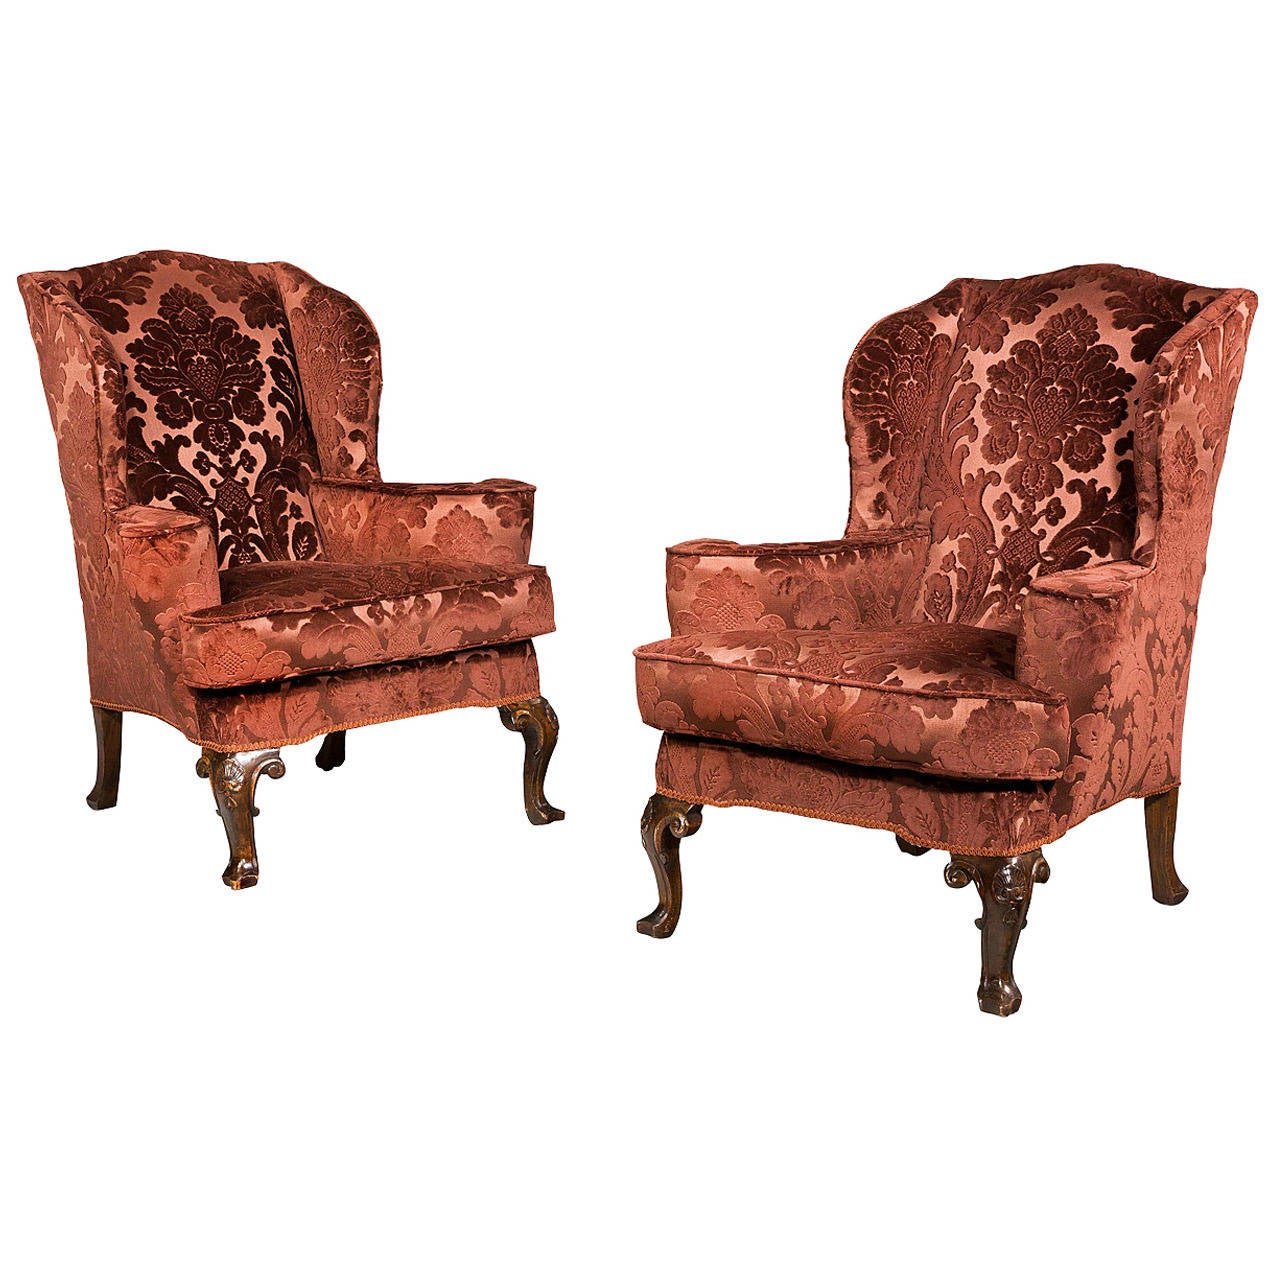 Used Wingback Chairs Pair Of 19th Century Upholstered Wing Chairs For Sale At